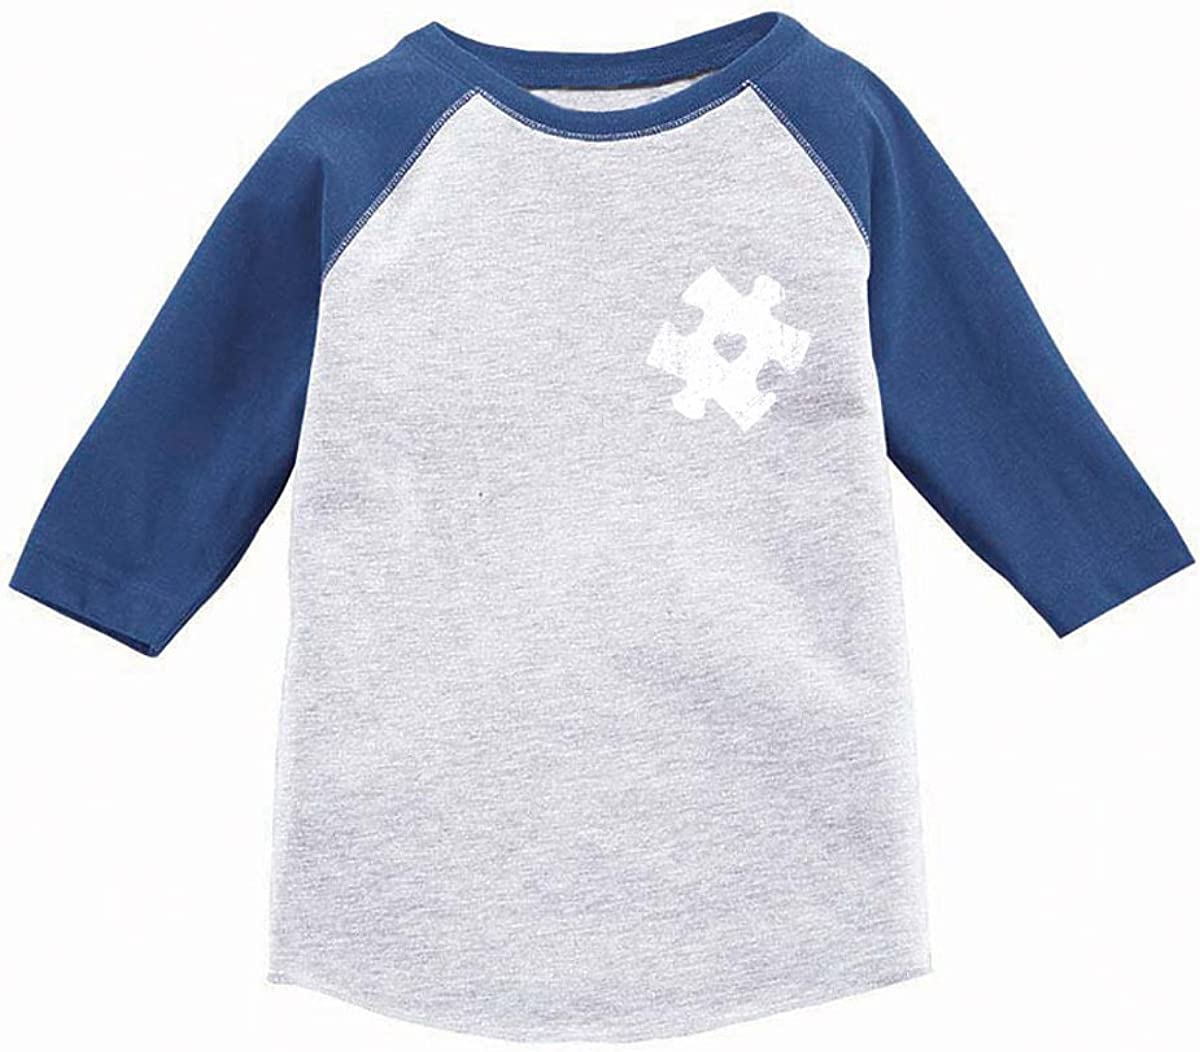 Awkward Styles Autism Shirts for Boys Autism Shirts for Girls 3/4 Sleeve Jersey Tee